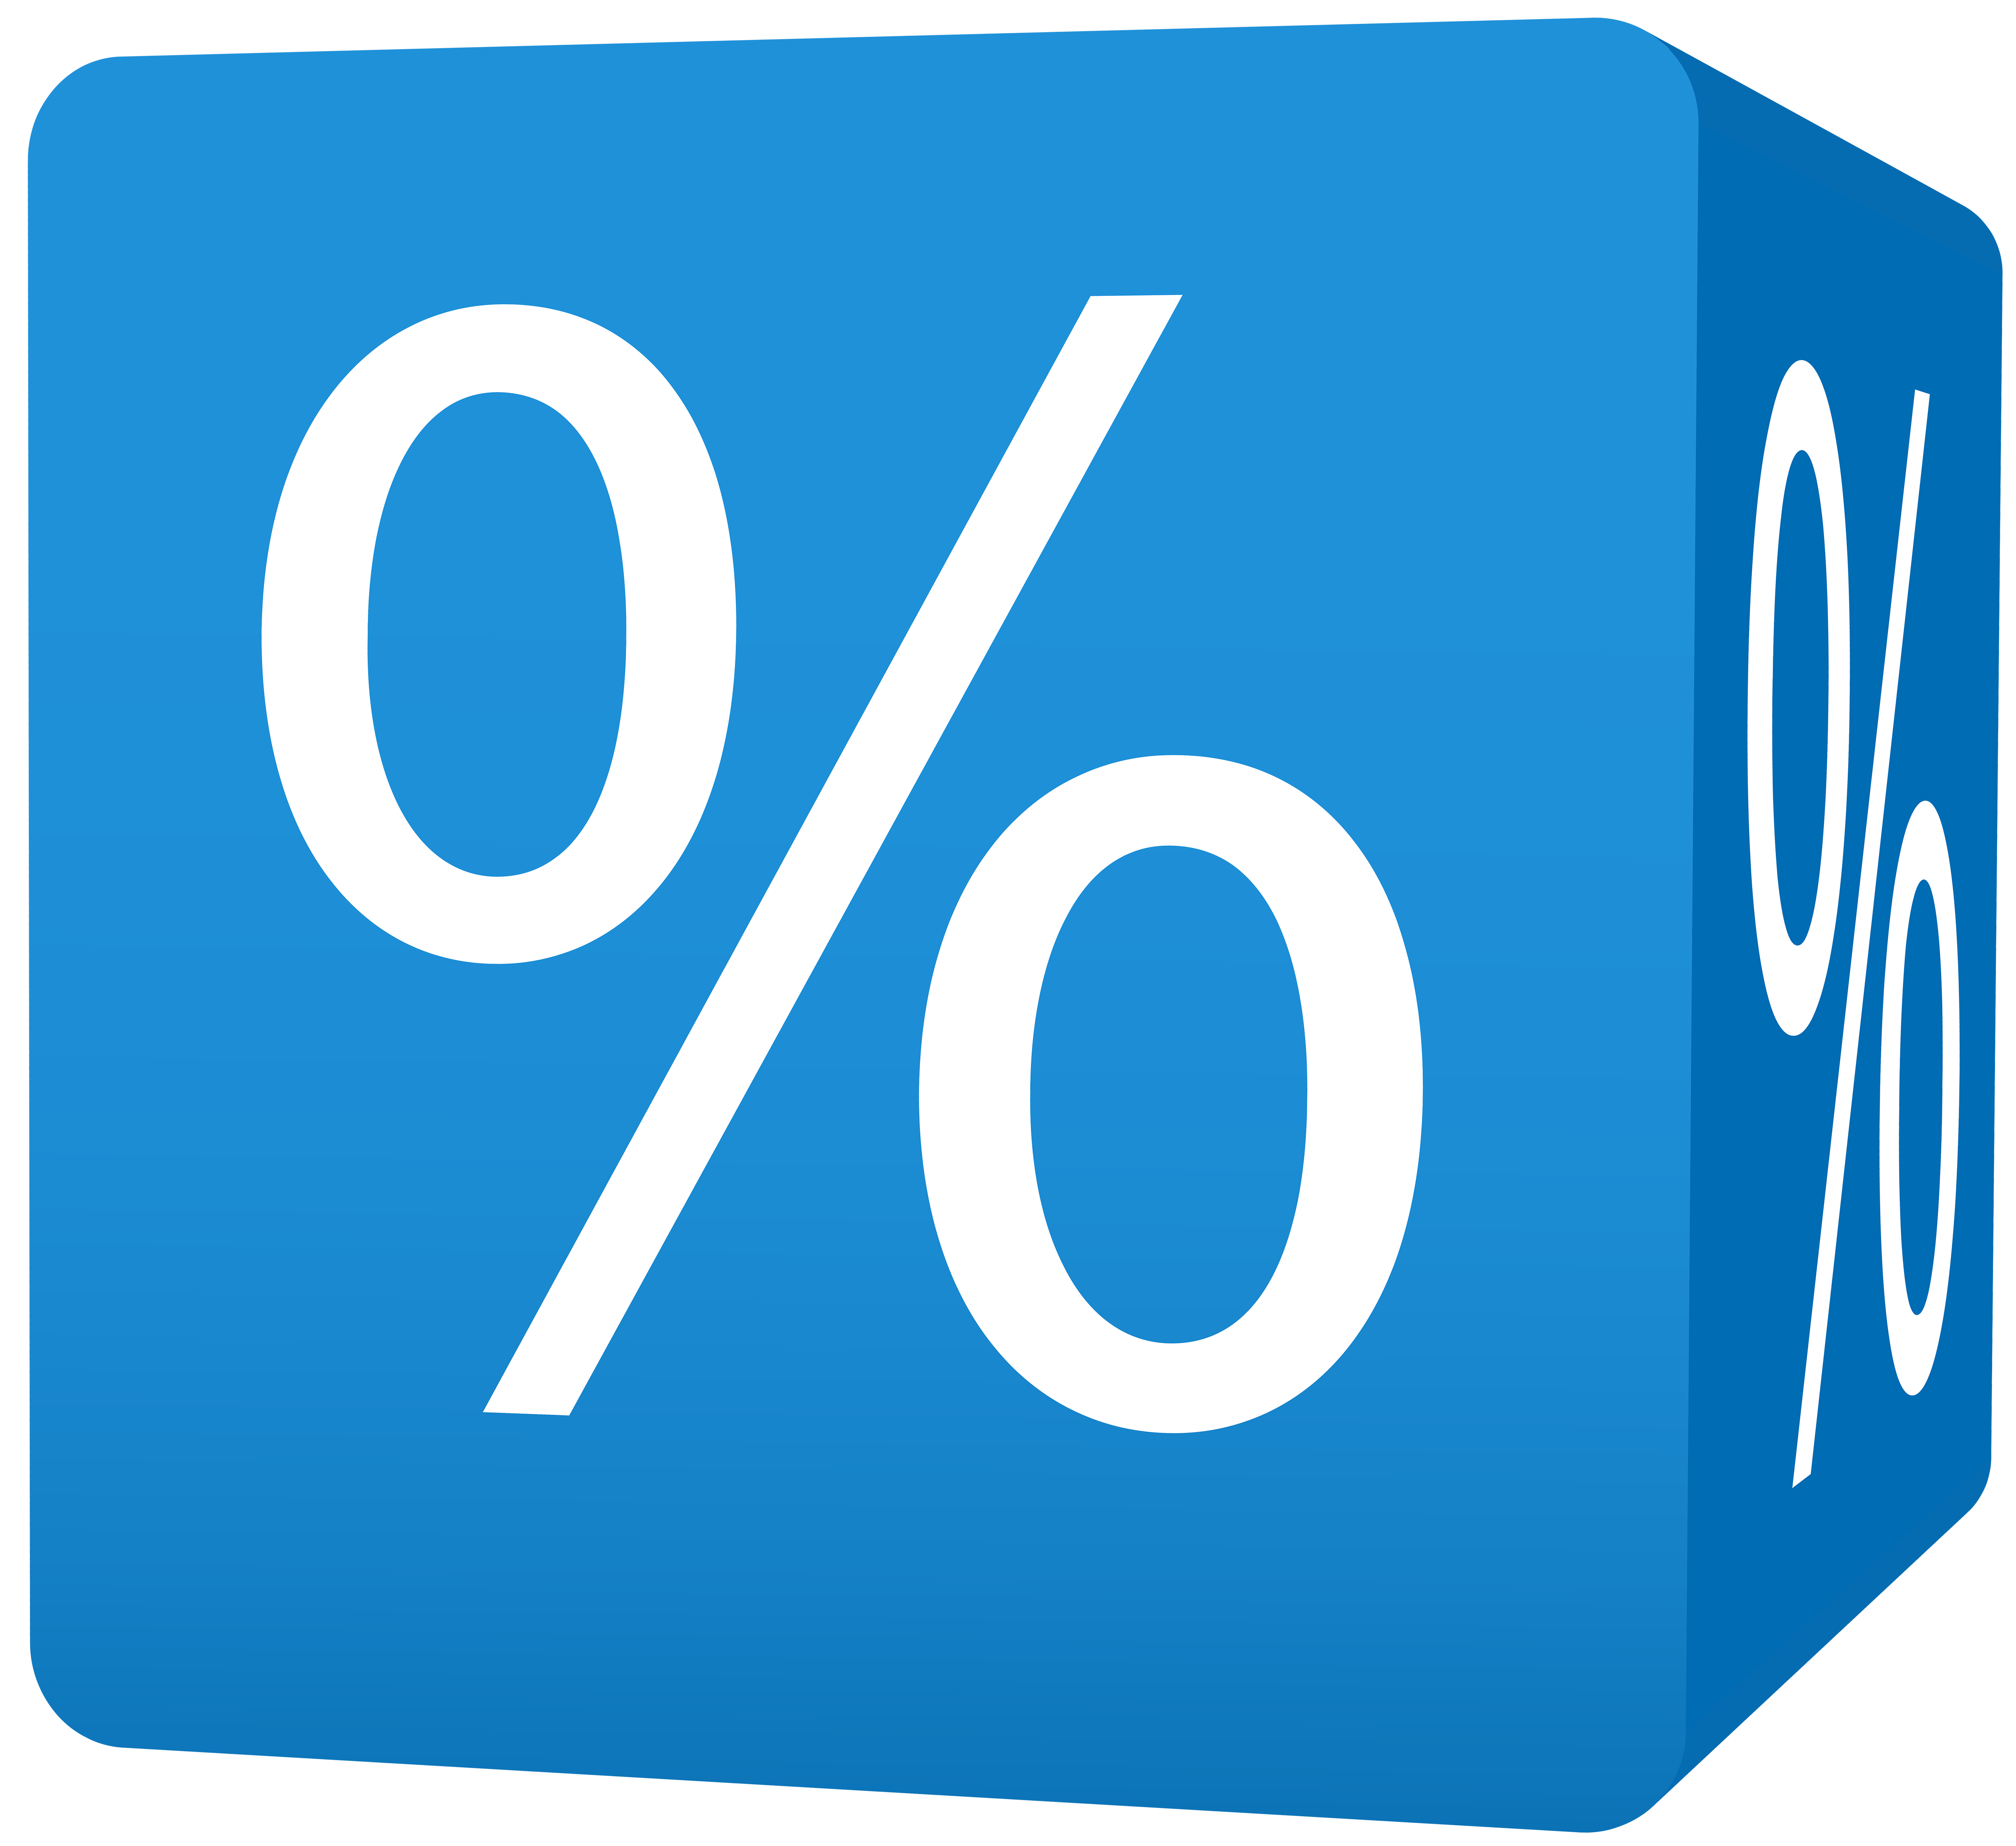 Blue Cube Brand Discount Logo Transparent PNG Image